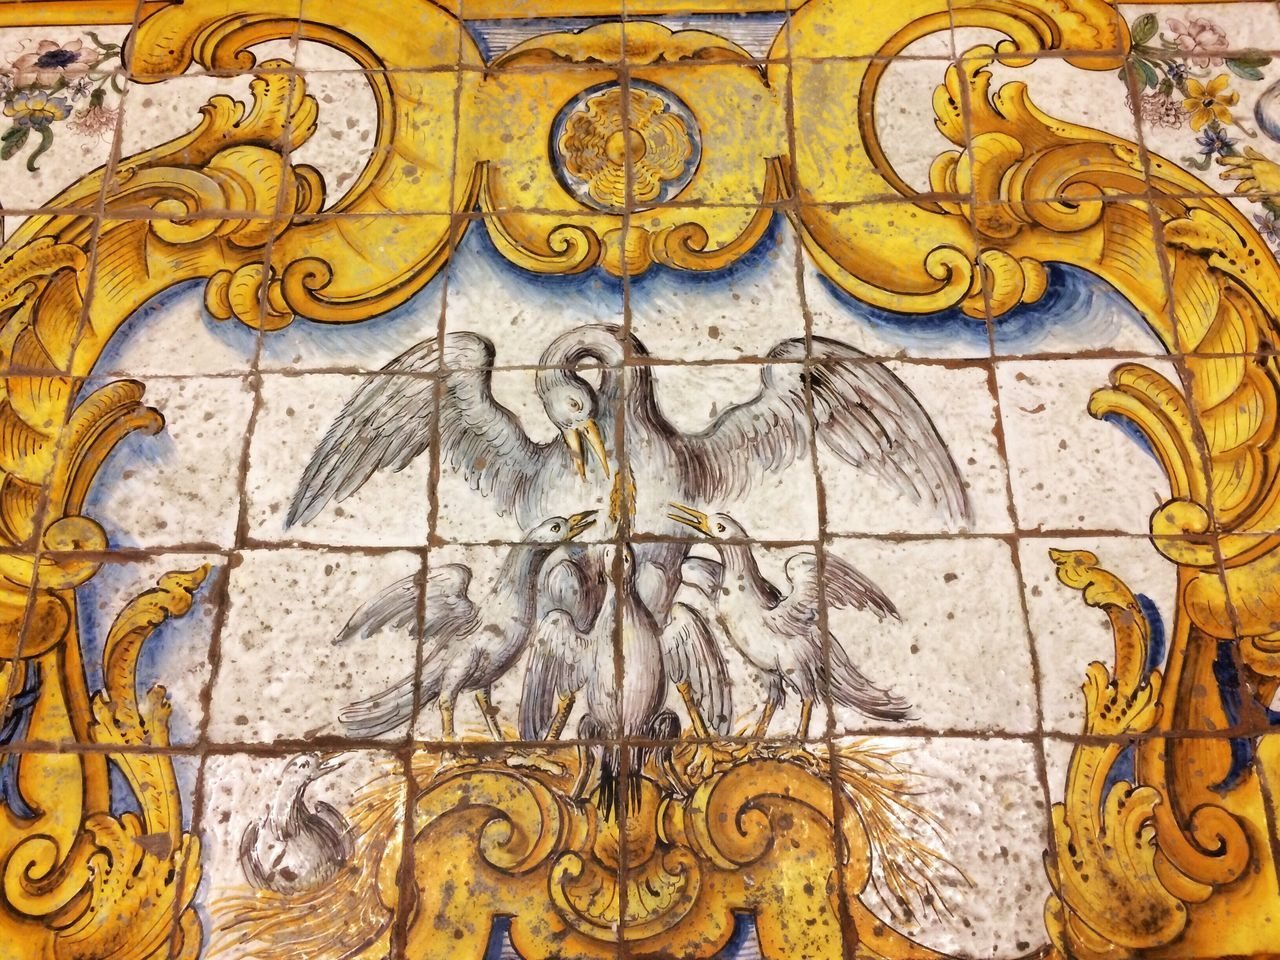 Close-up No People Architecture Anacapri Italy Capri Maioliche ChiesadiSanMichele Church Pavement Pavimento Birds Bible Anacapri Azulejos Maiolica Padlózat Templom